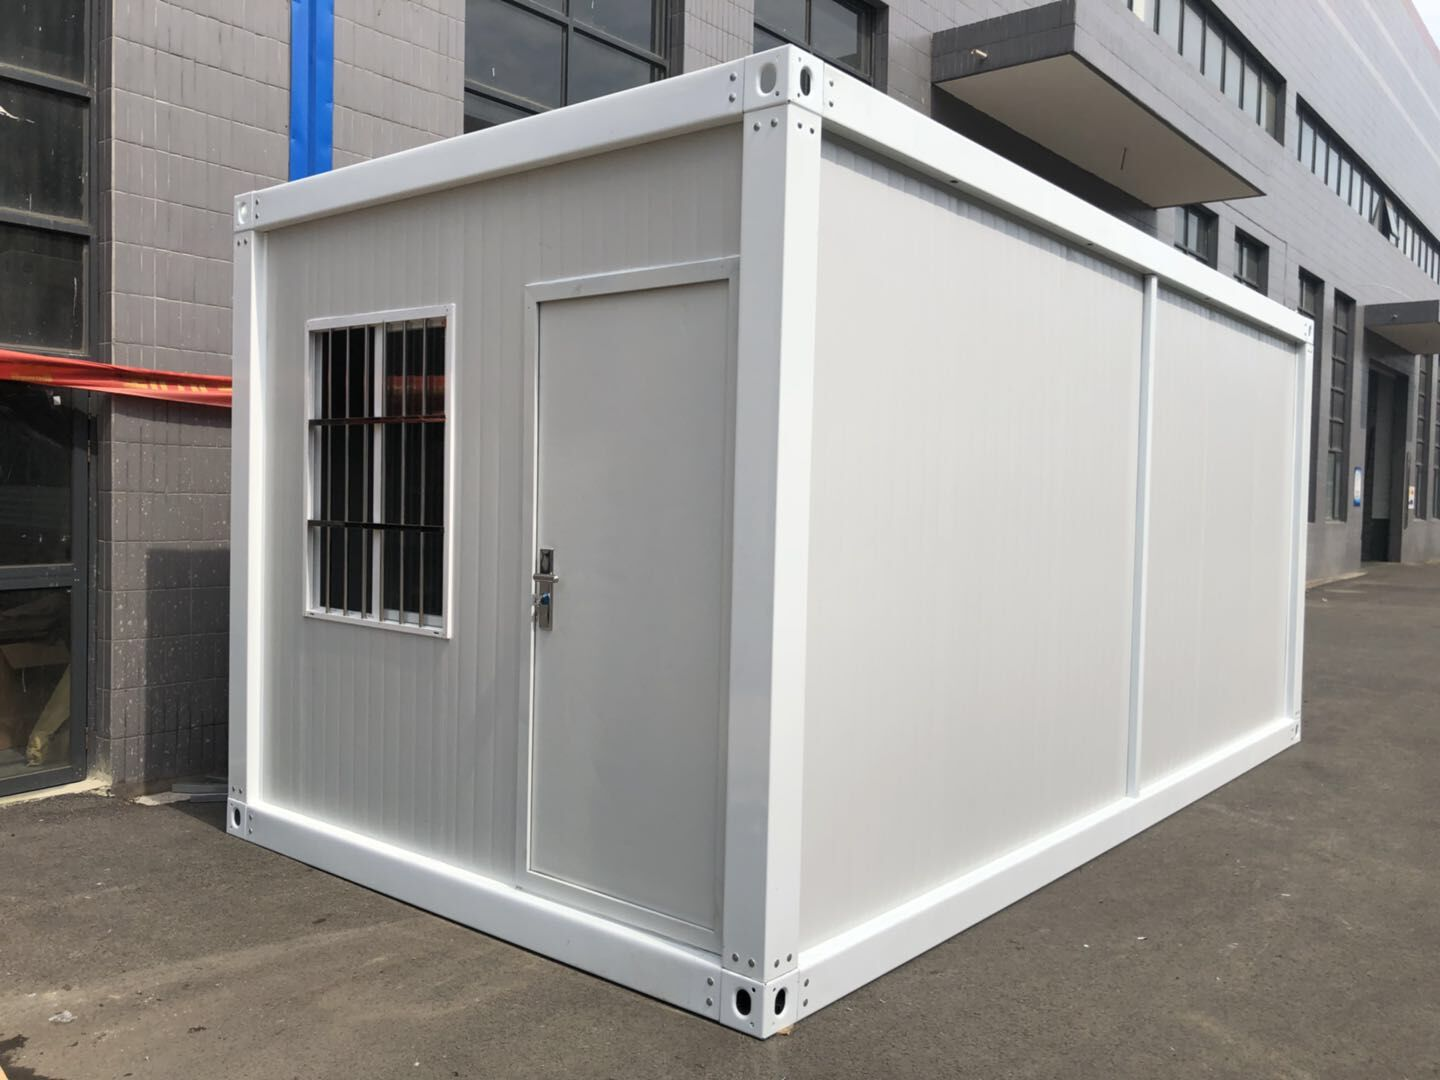 https://container.in.ua/wp-content/uploads/2020/11/Quick-cabin-V1.0-.jpg